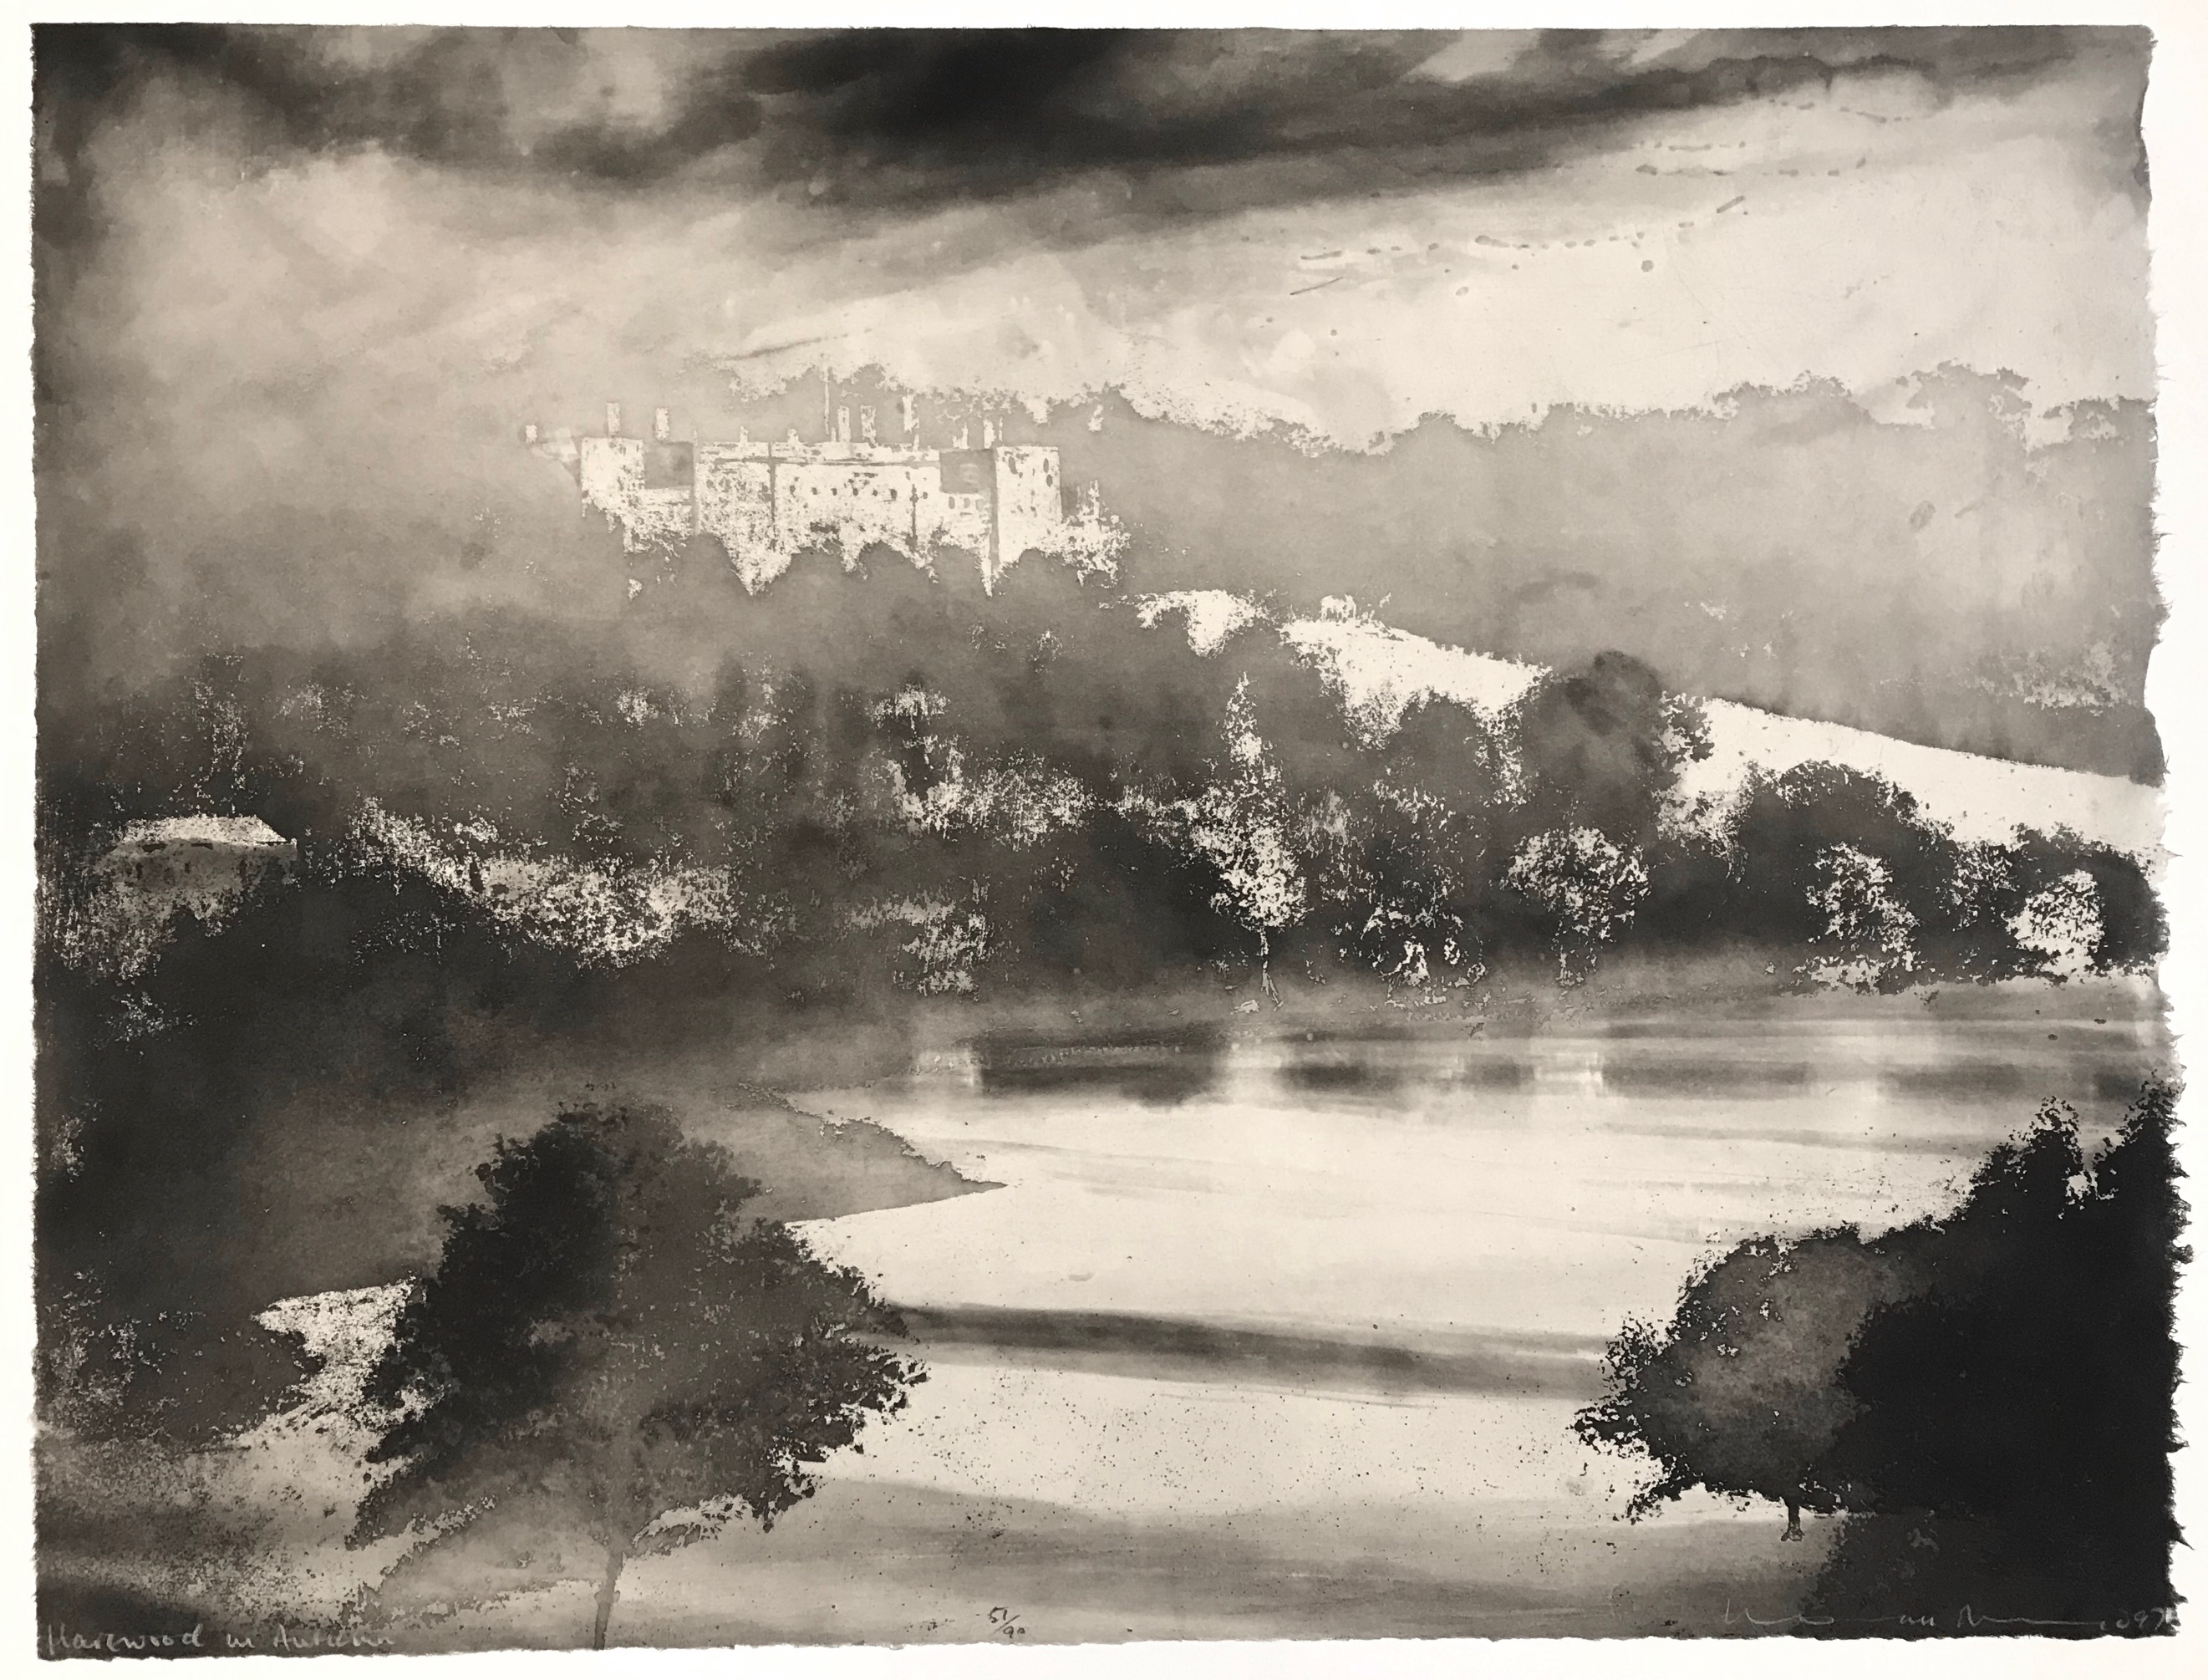 Harewood in Autumn Norman Ackroyd Etching, signed dated and titled in pencil. Numbered from the edition of 90, 1997